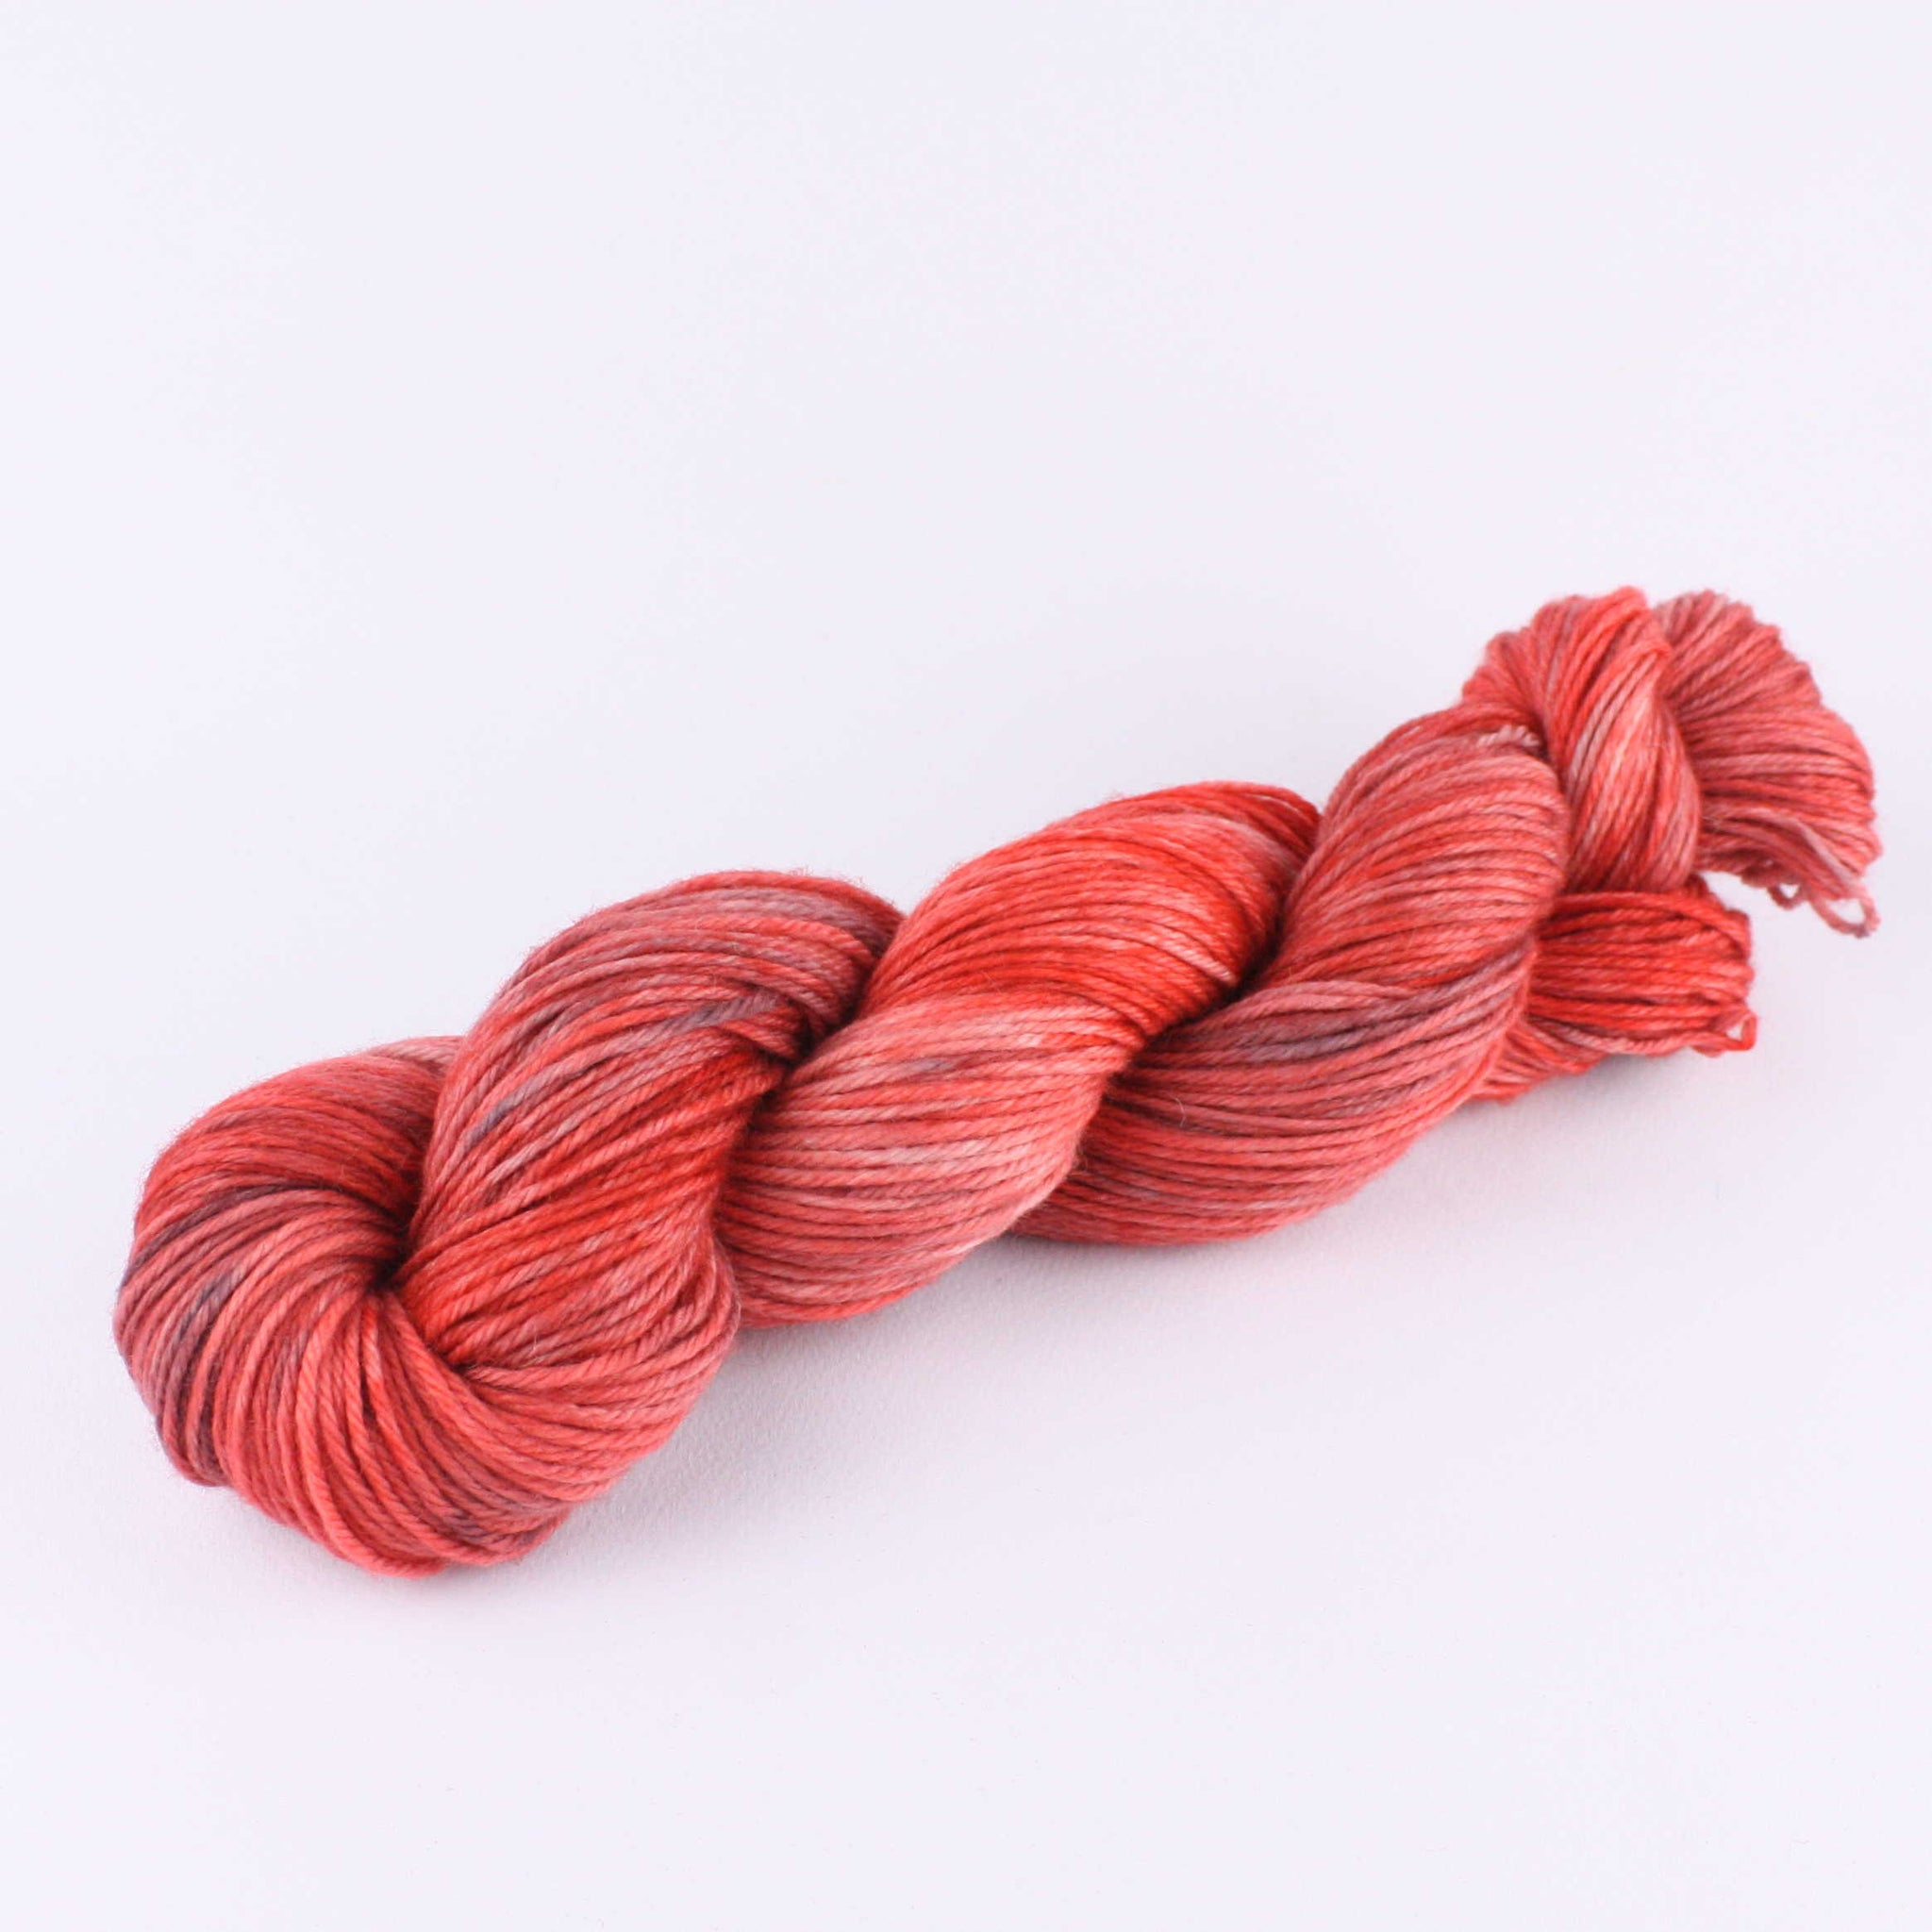 Superwash Merino - Concoction 41